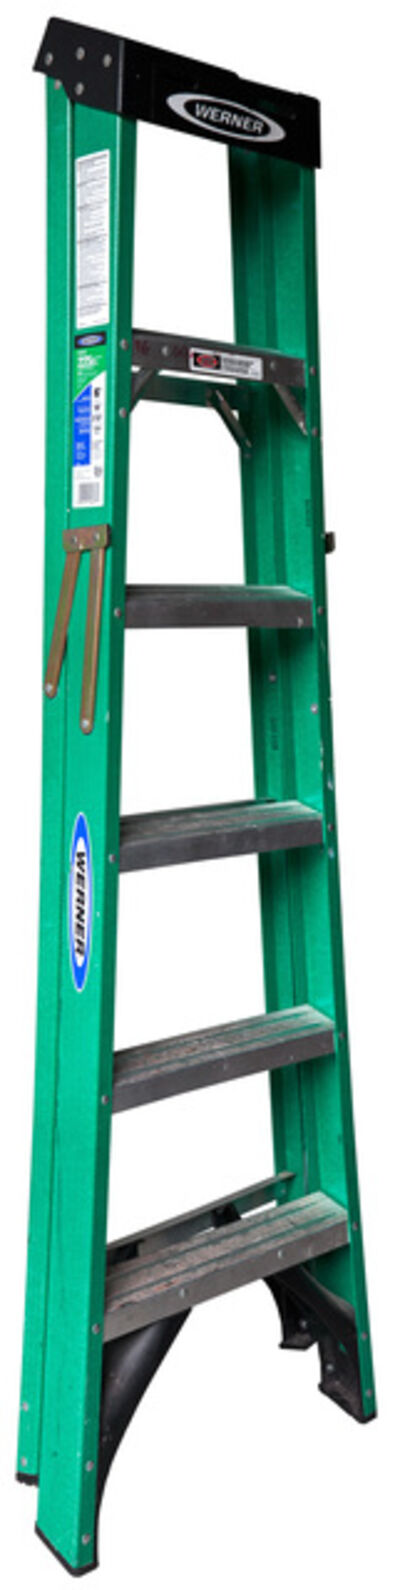 Jennifer Williams, 'Medium Folding Ladder: Green with Black Top', 2012